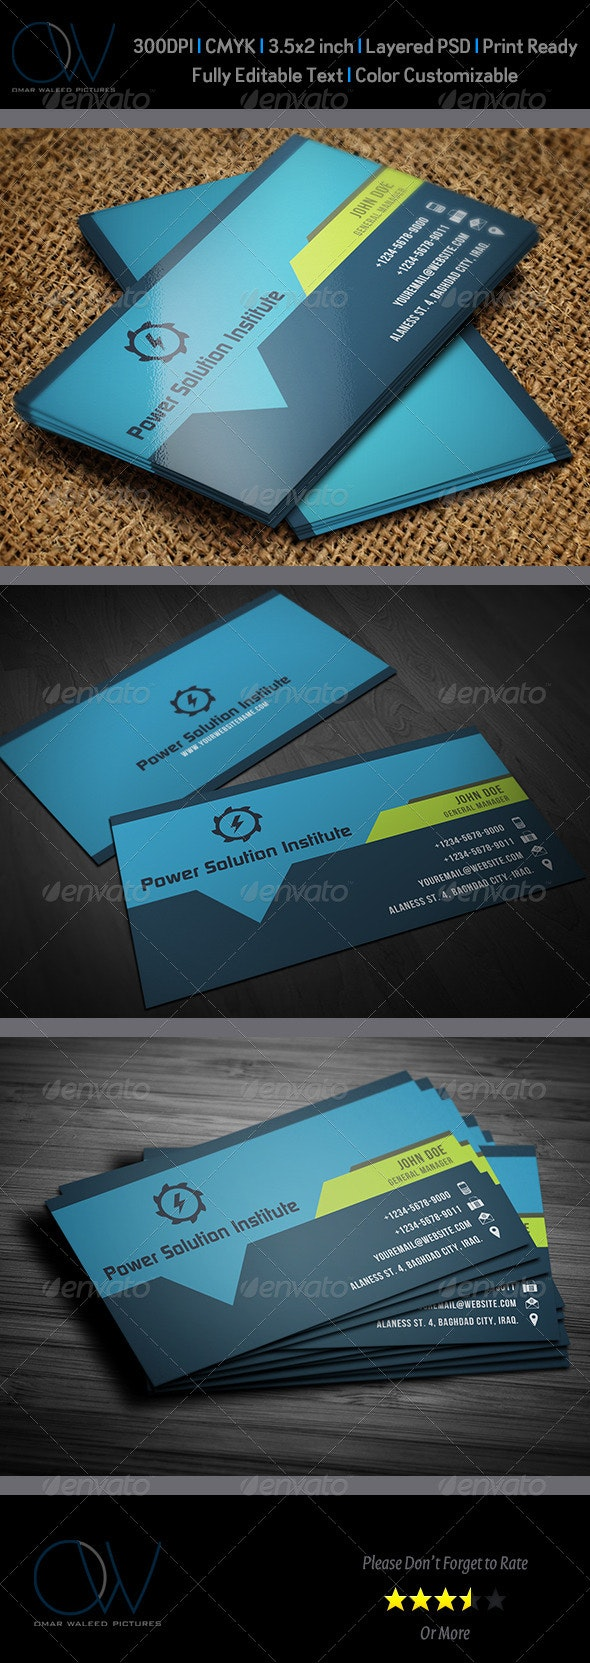 Corporate Business Card Vol.40 - Corporate Business Cards